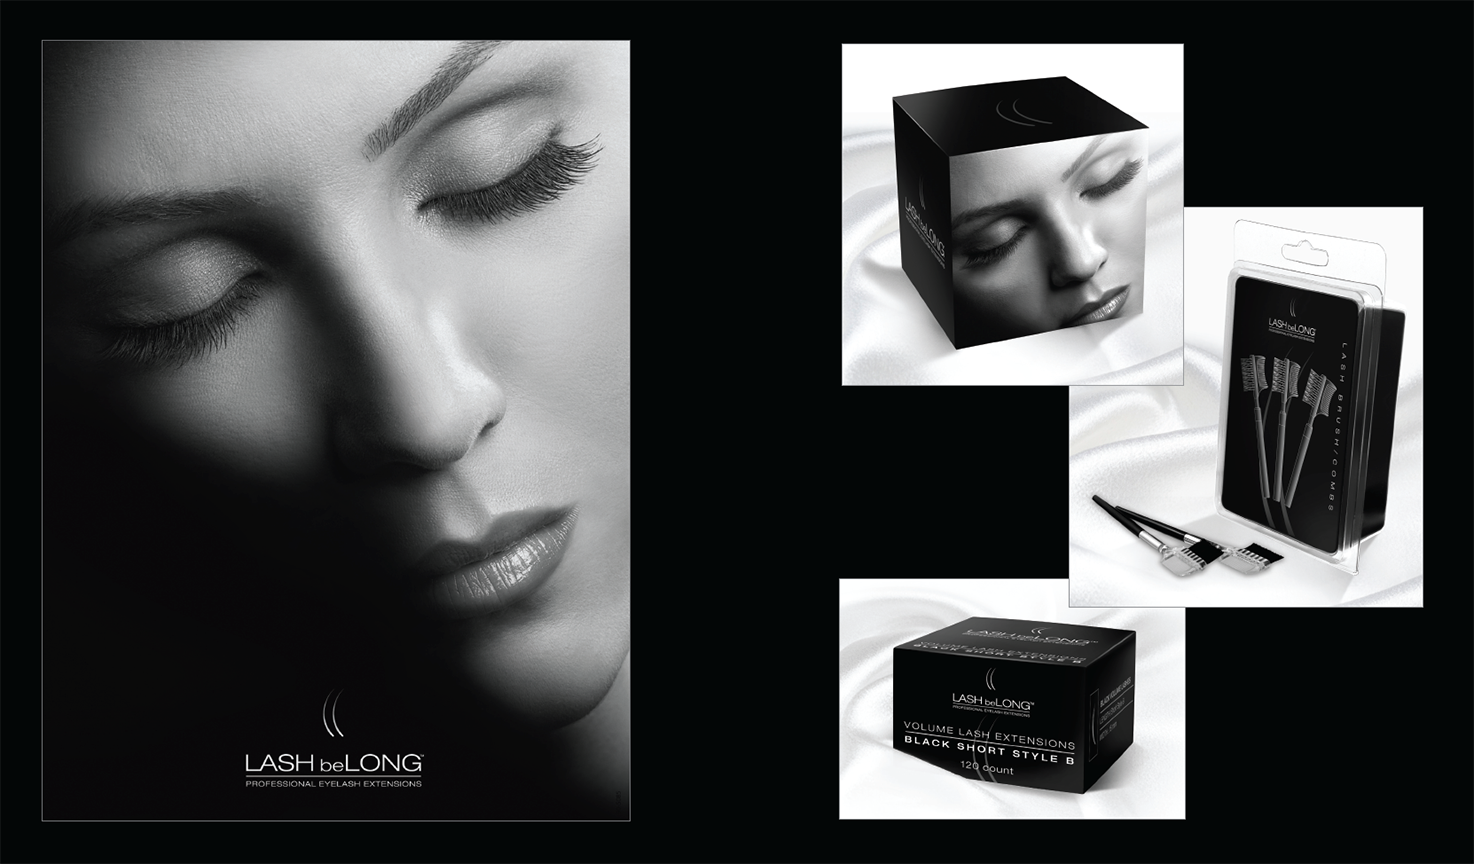 LASH beLONG  |  marketing/packaging